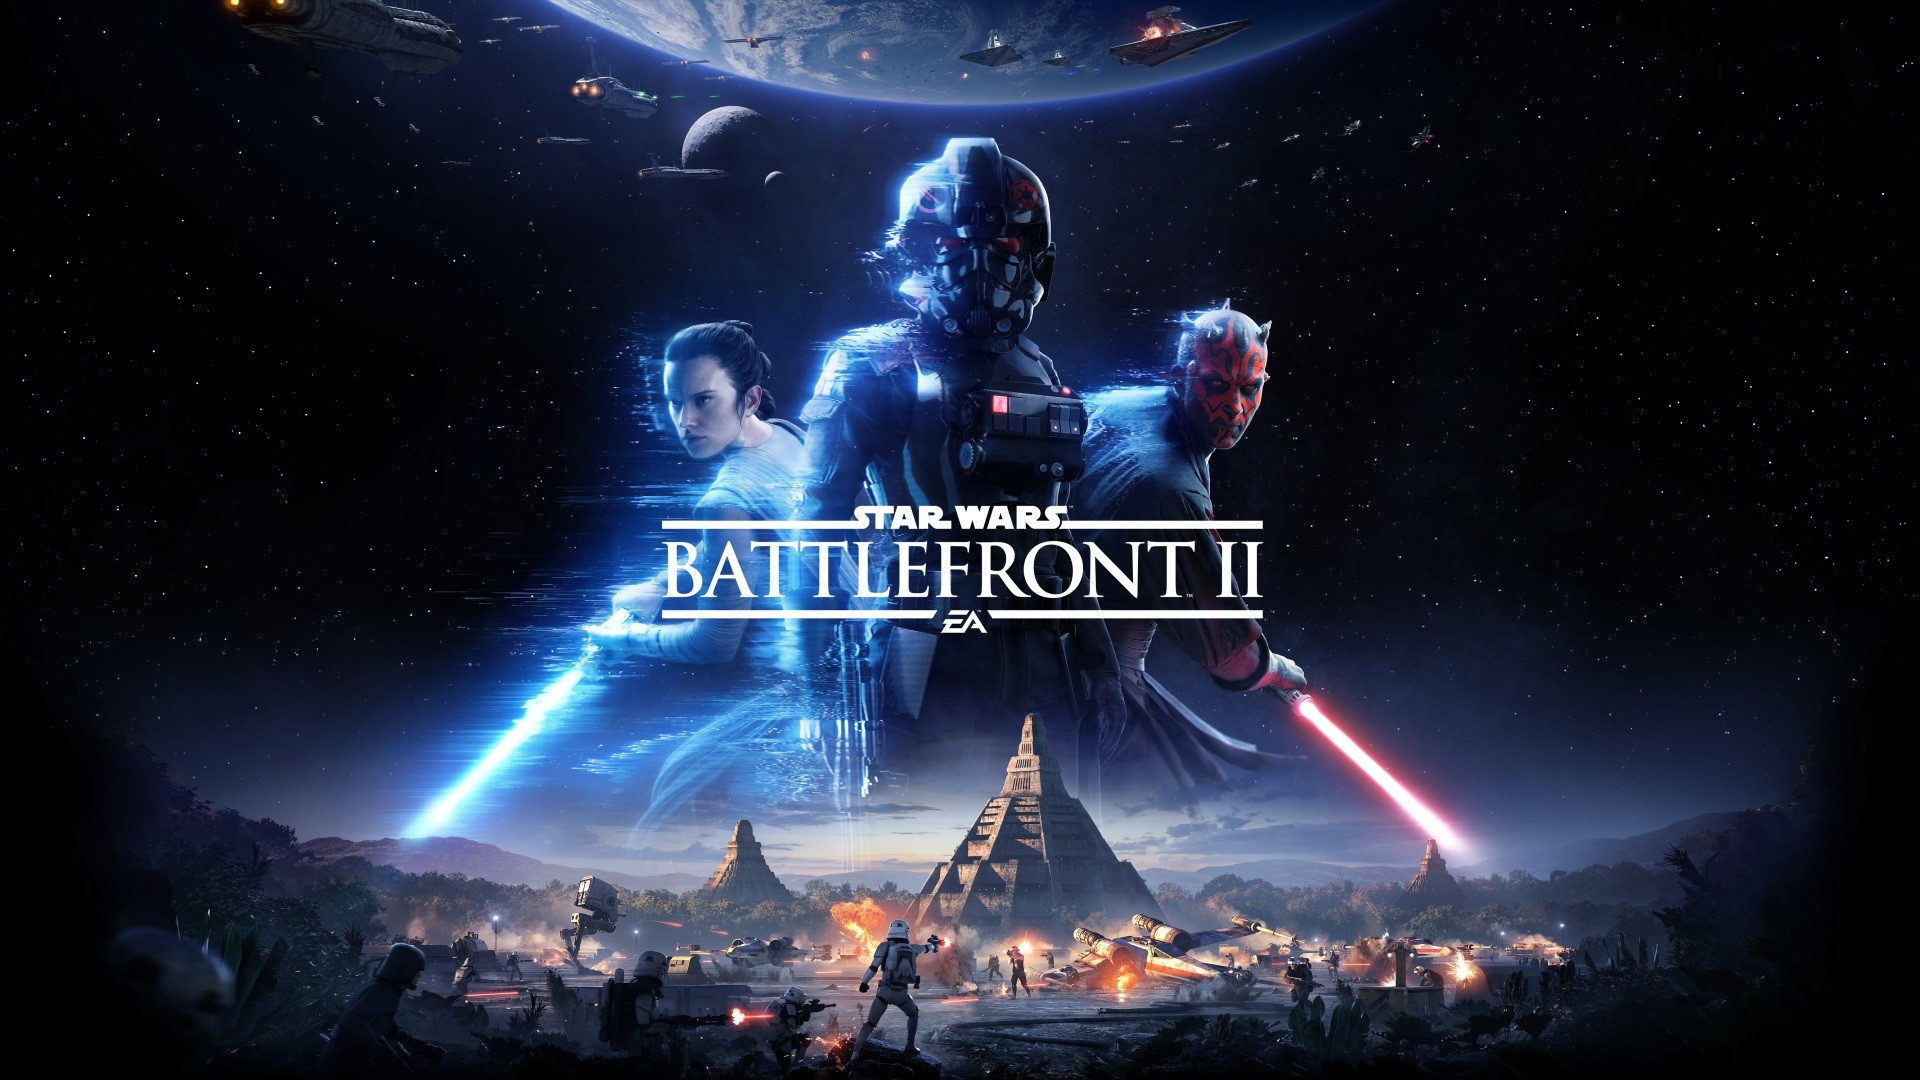 1920x1080 Star Wars Battlefront 2 II Console Wallpaper